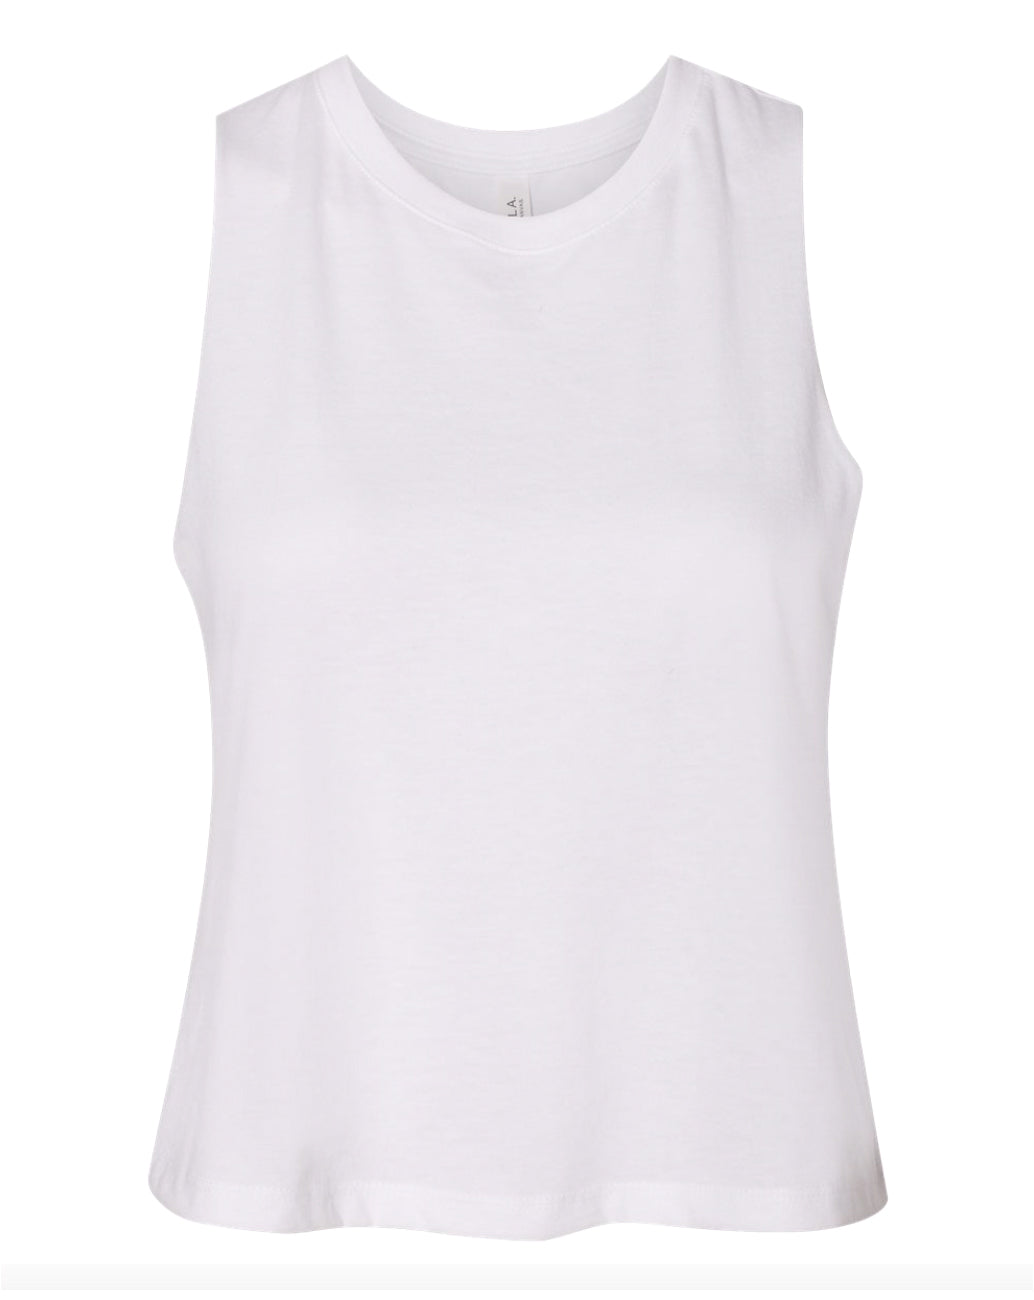 white crop top tank top